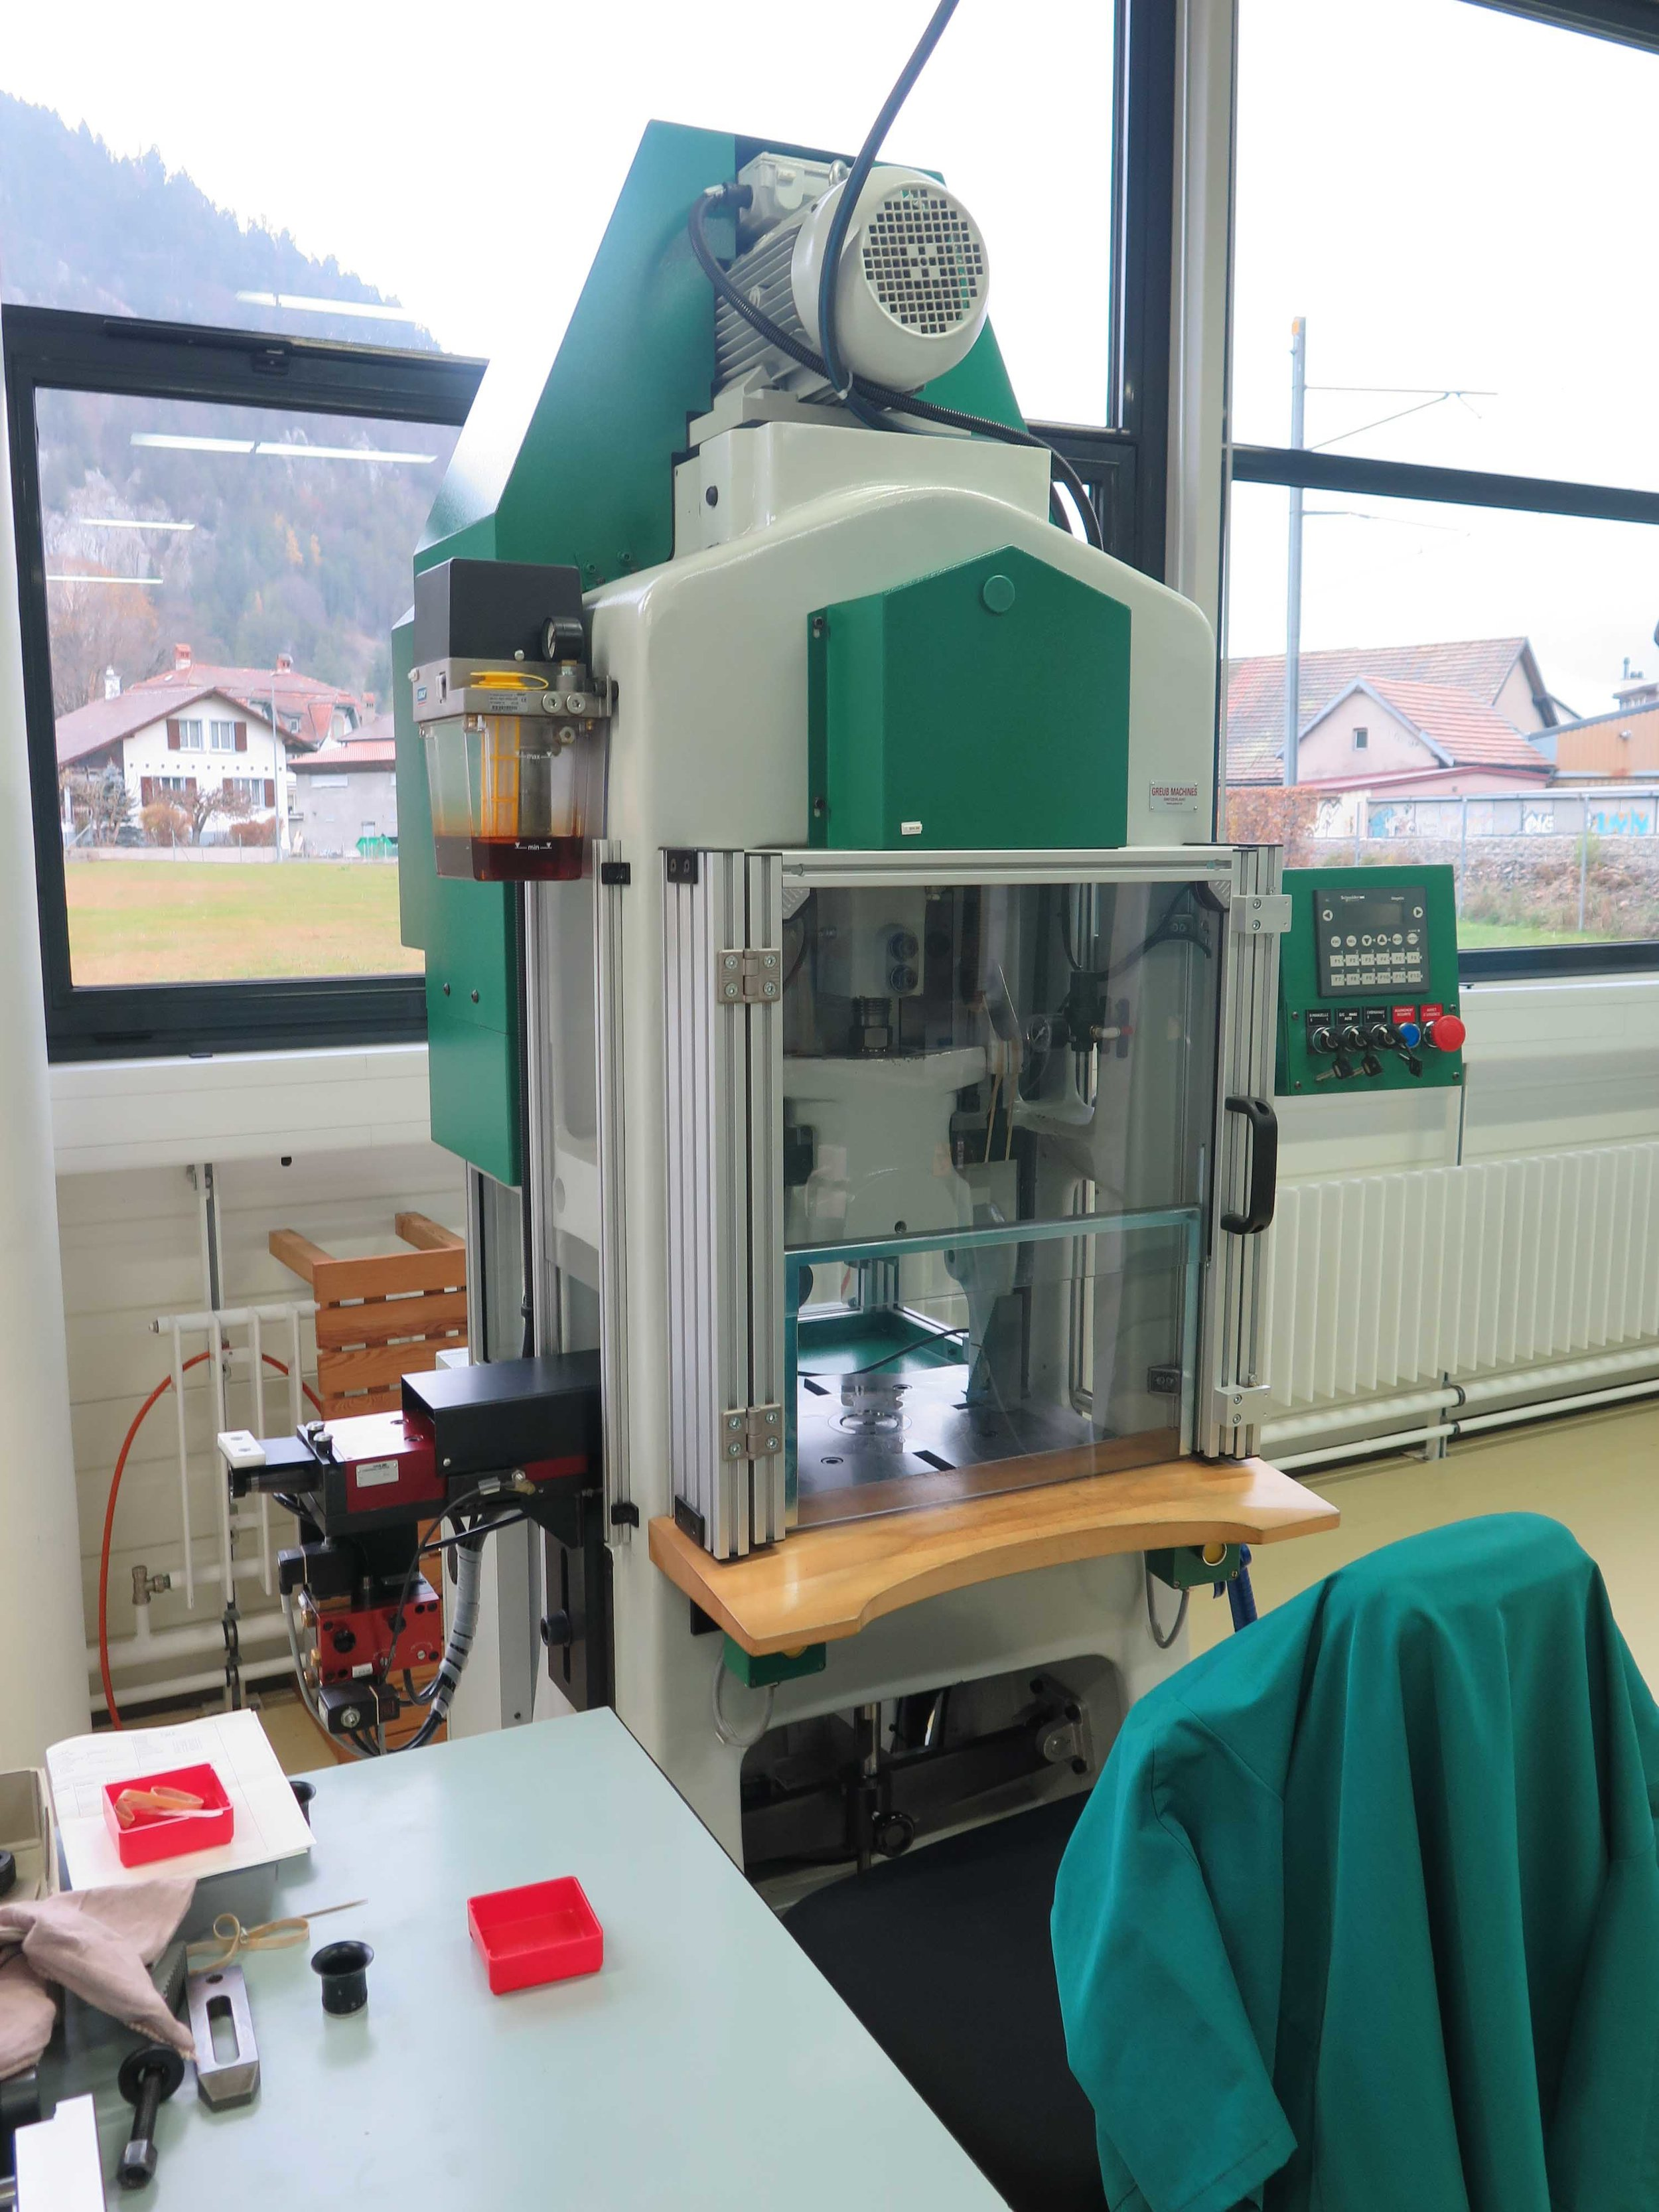 A second stamping machine